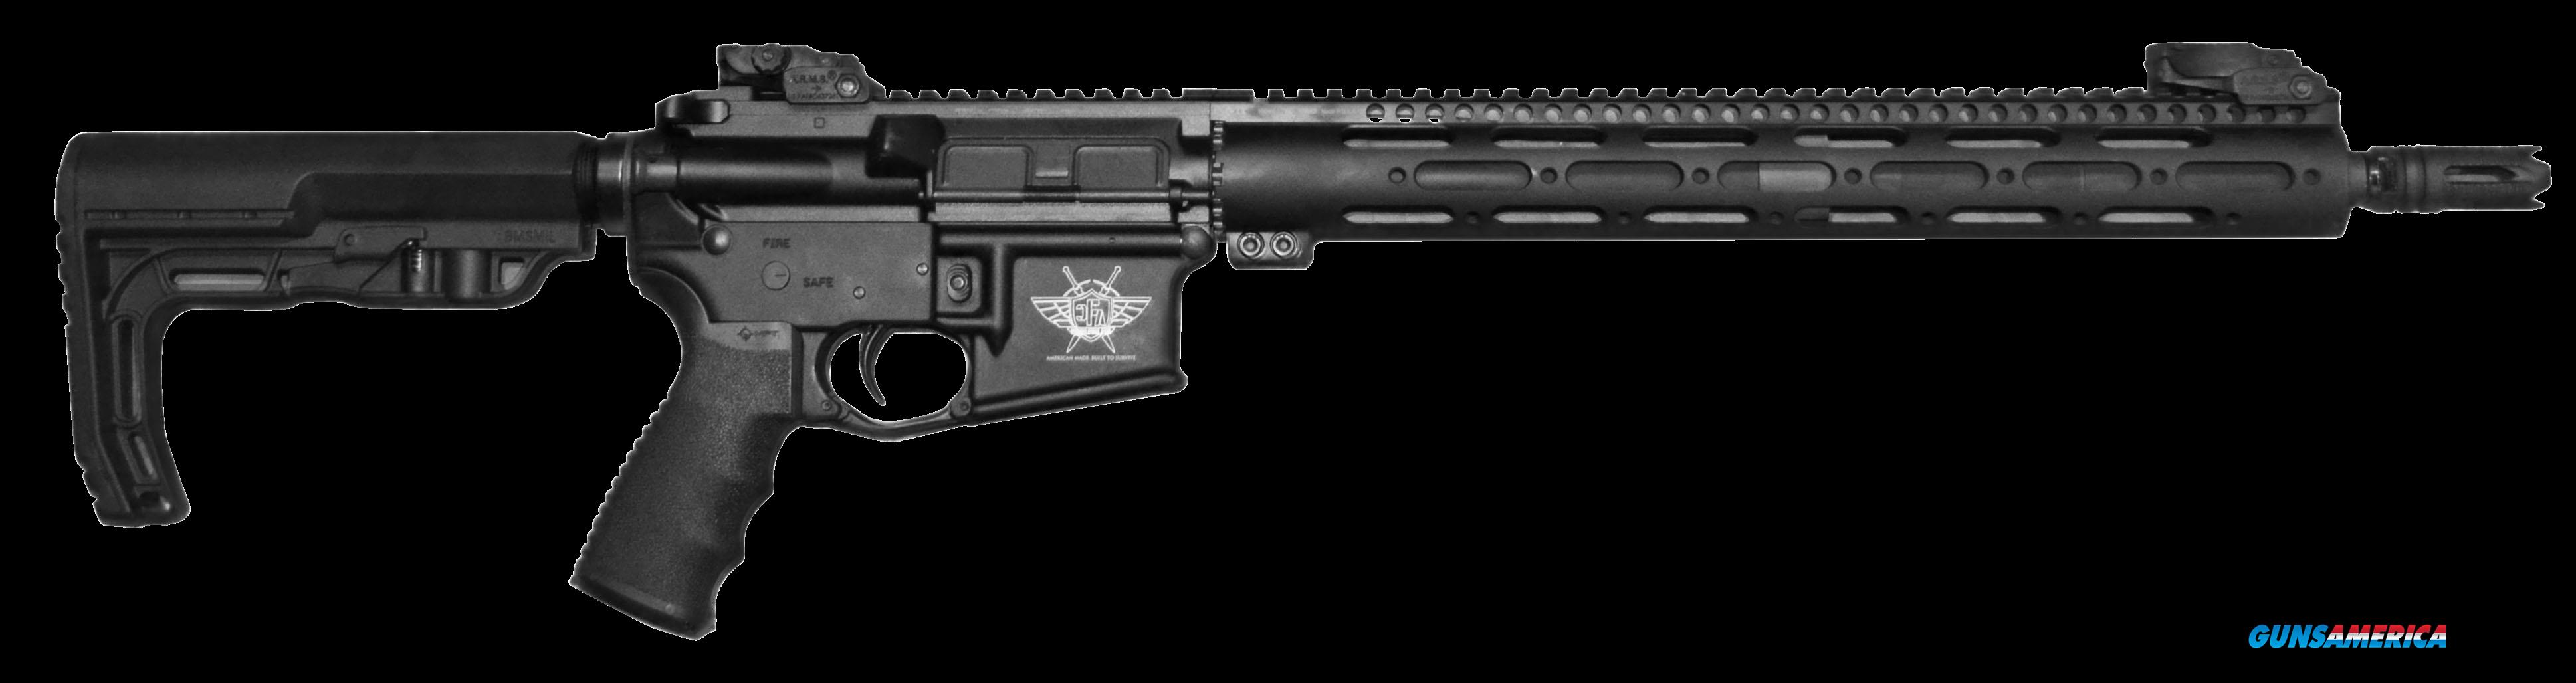 "Civilian Force Arms 010117YH Hagos-15 AR-15 Semi-Automatic 223 Remington/5.56 NATO 16"" 30+1  Guns > Rifles > C Misc Rifles"